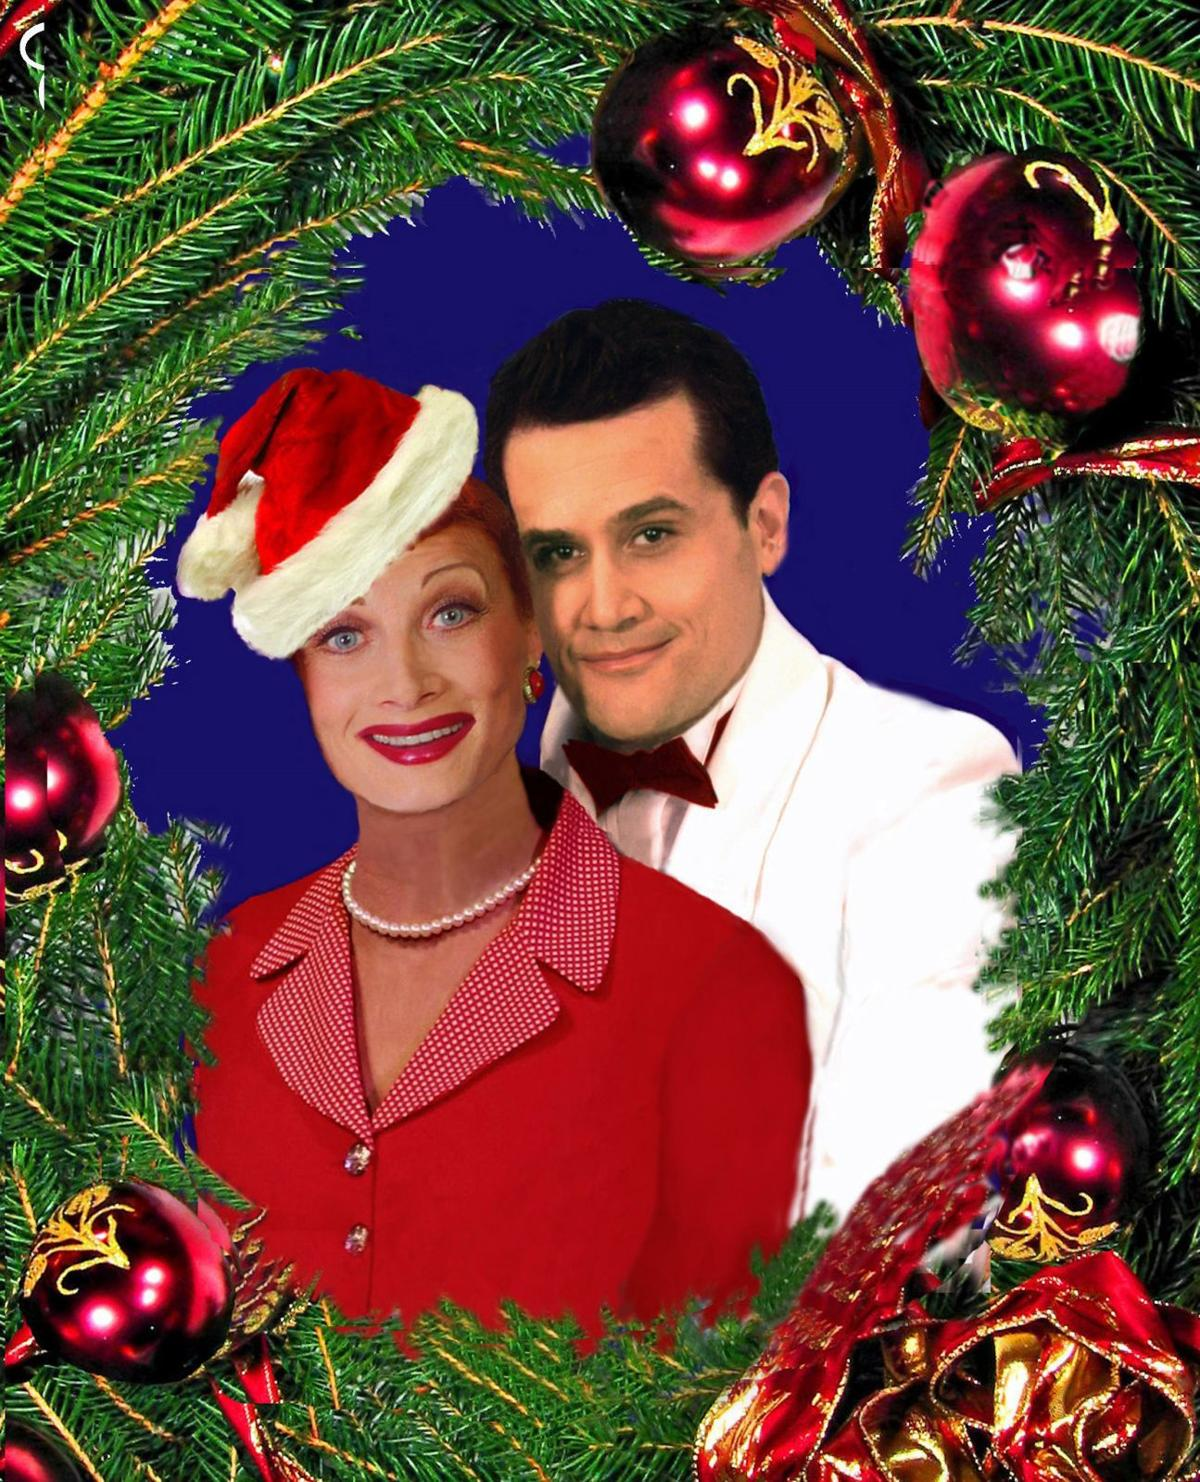 Celebrate Christmas with Lucy and Ricky at Abbeville Opera House Dec. 6.